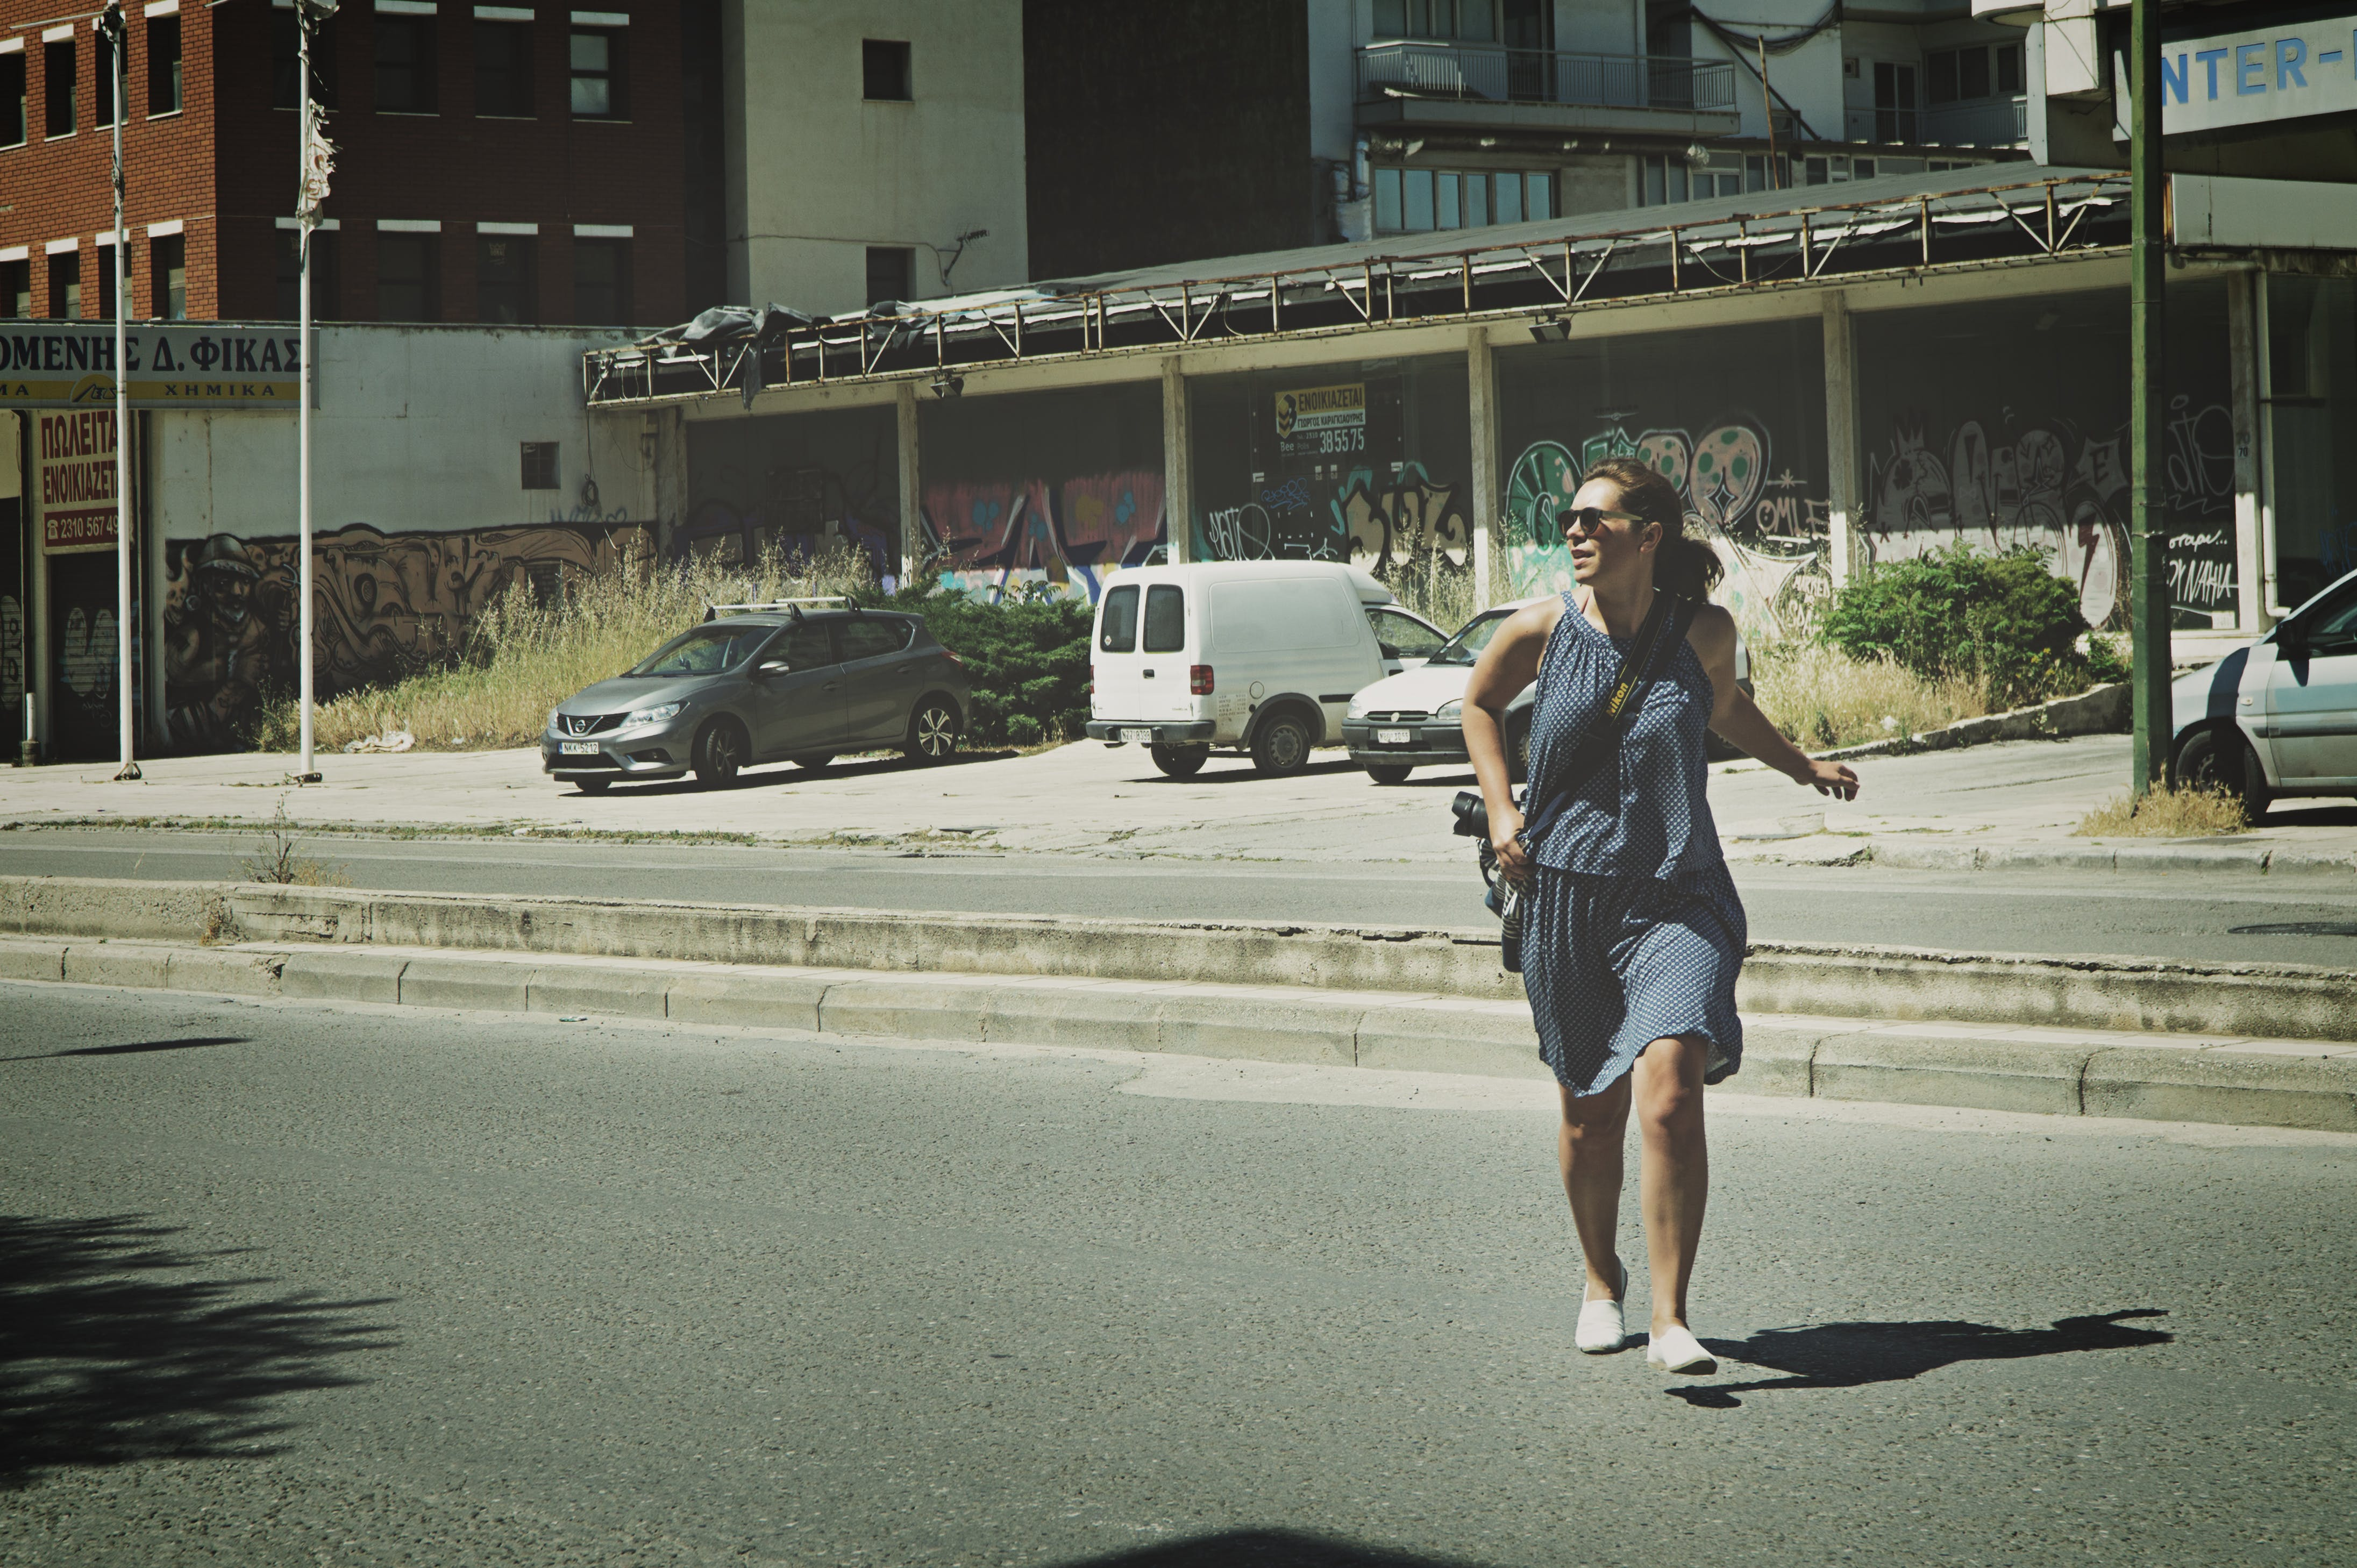 Woman Wearing Gray Tank Top Walking on Asphalt Road